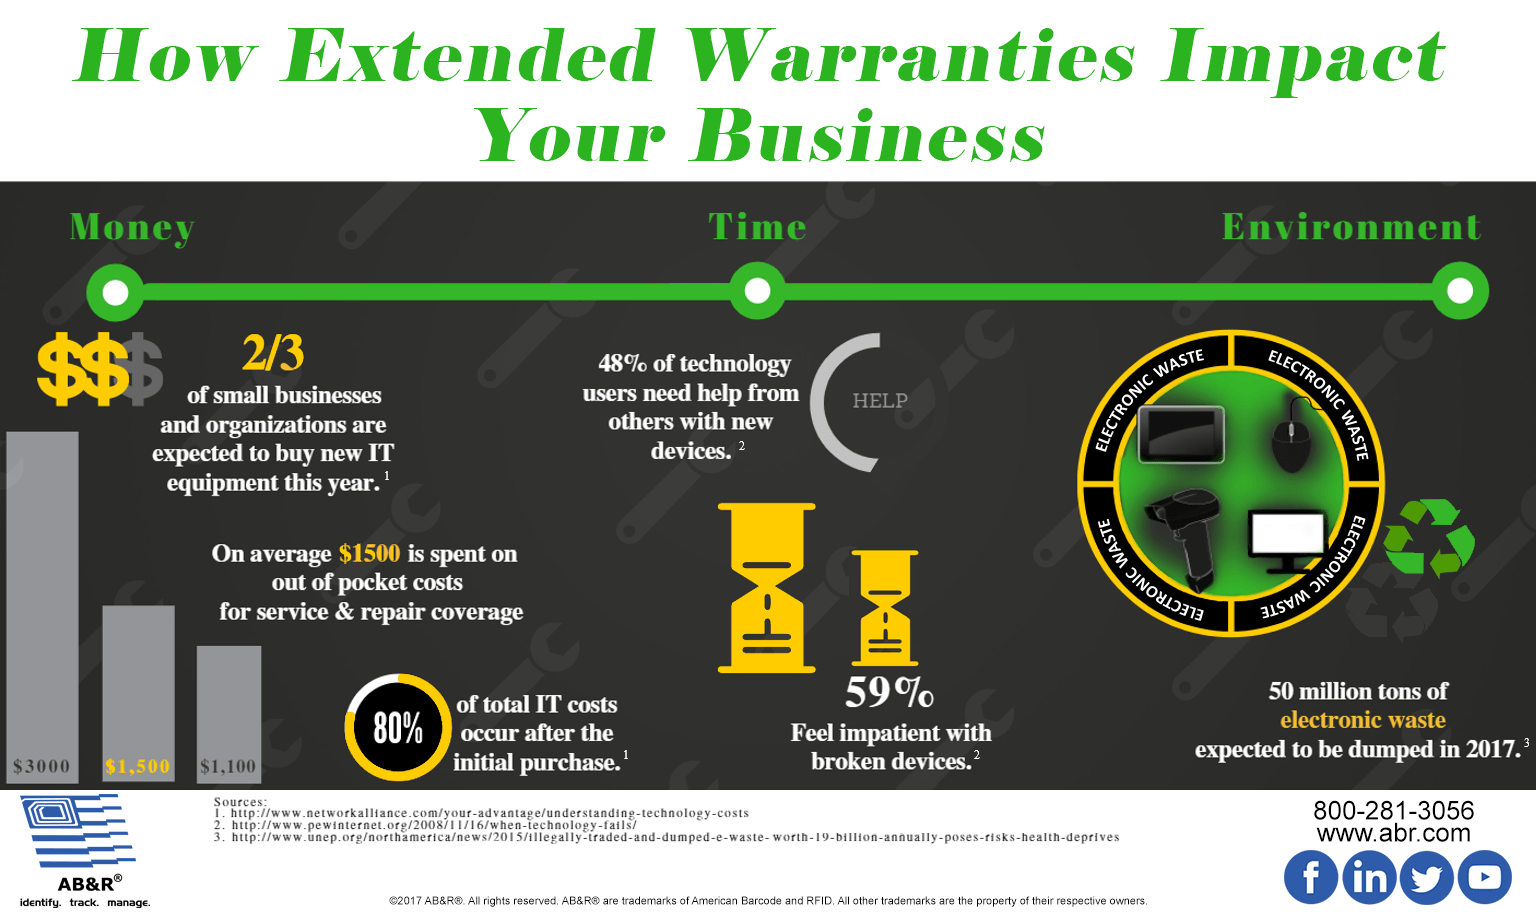 How extended warranties impact your business